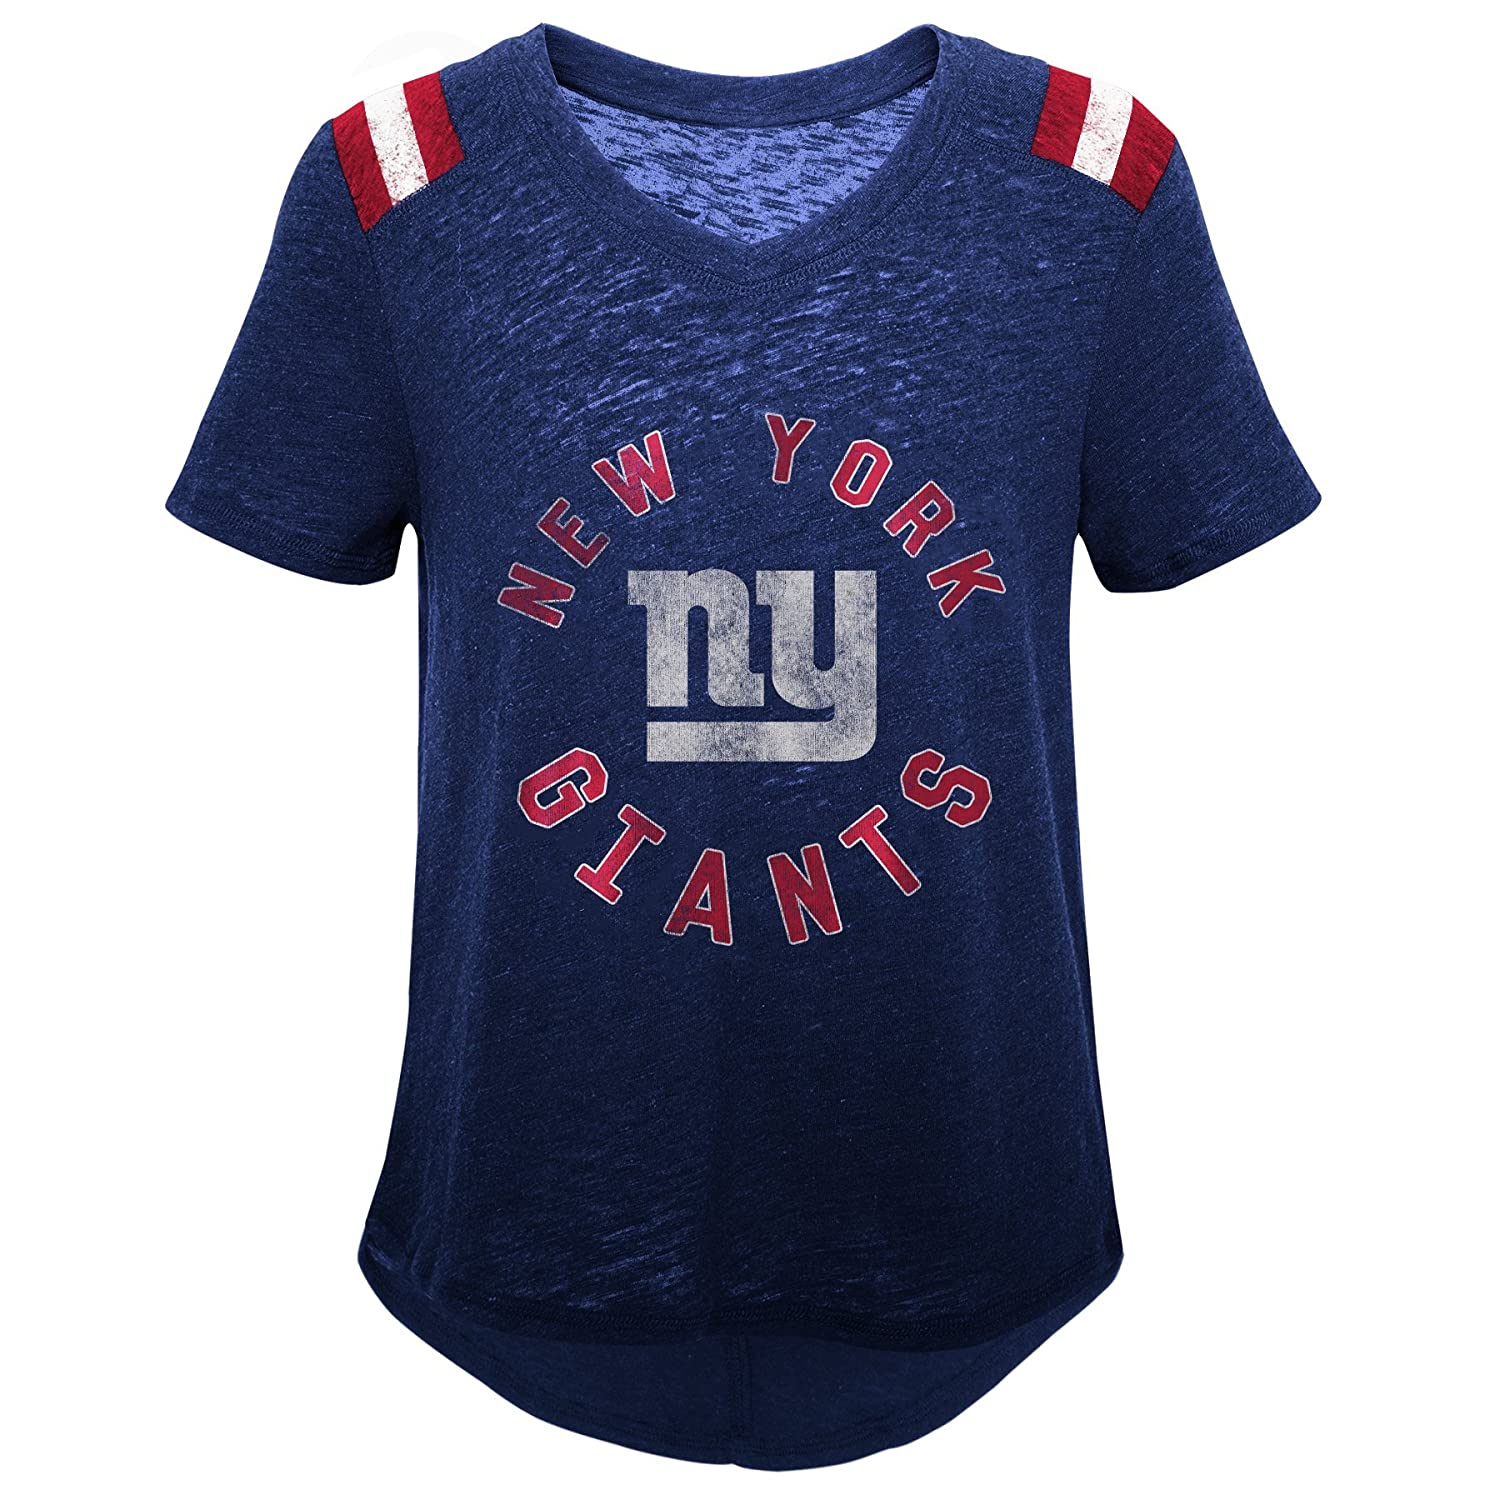 Outerstuff NFL NFL New York Giants Youth Girls Retro Block Vintage Short Sleeve Football Tee Dark Royal Youth Medium 10-12